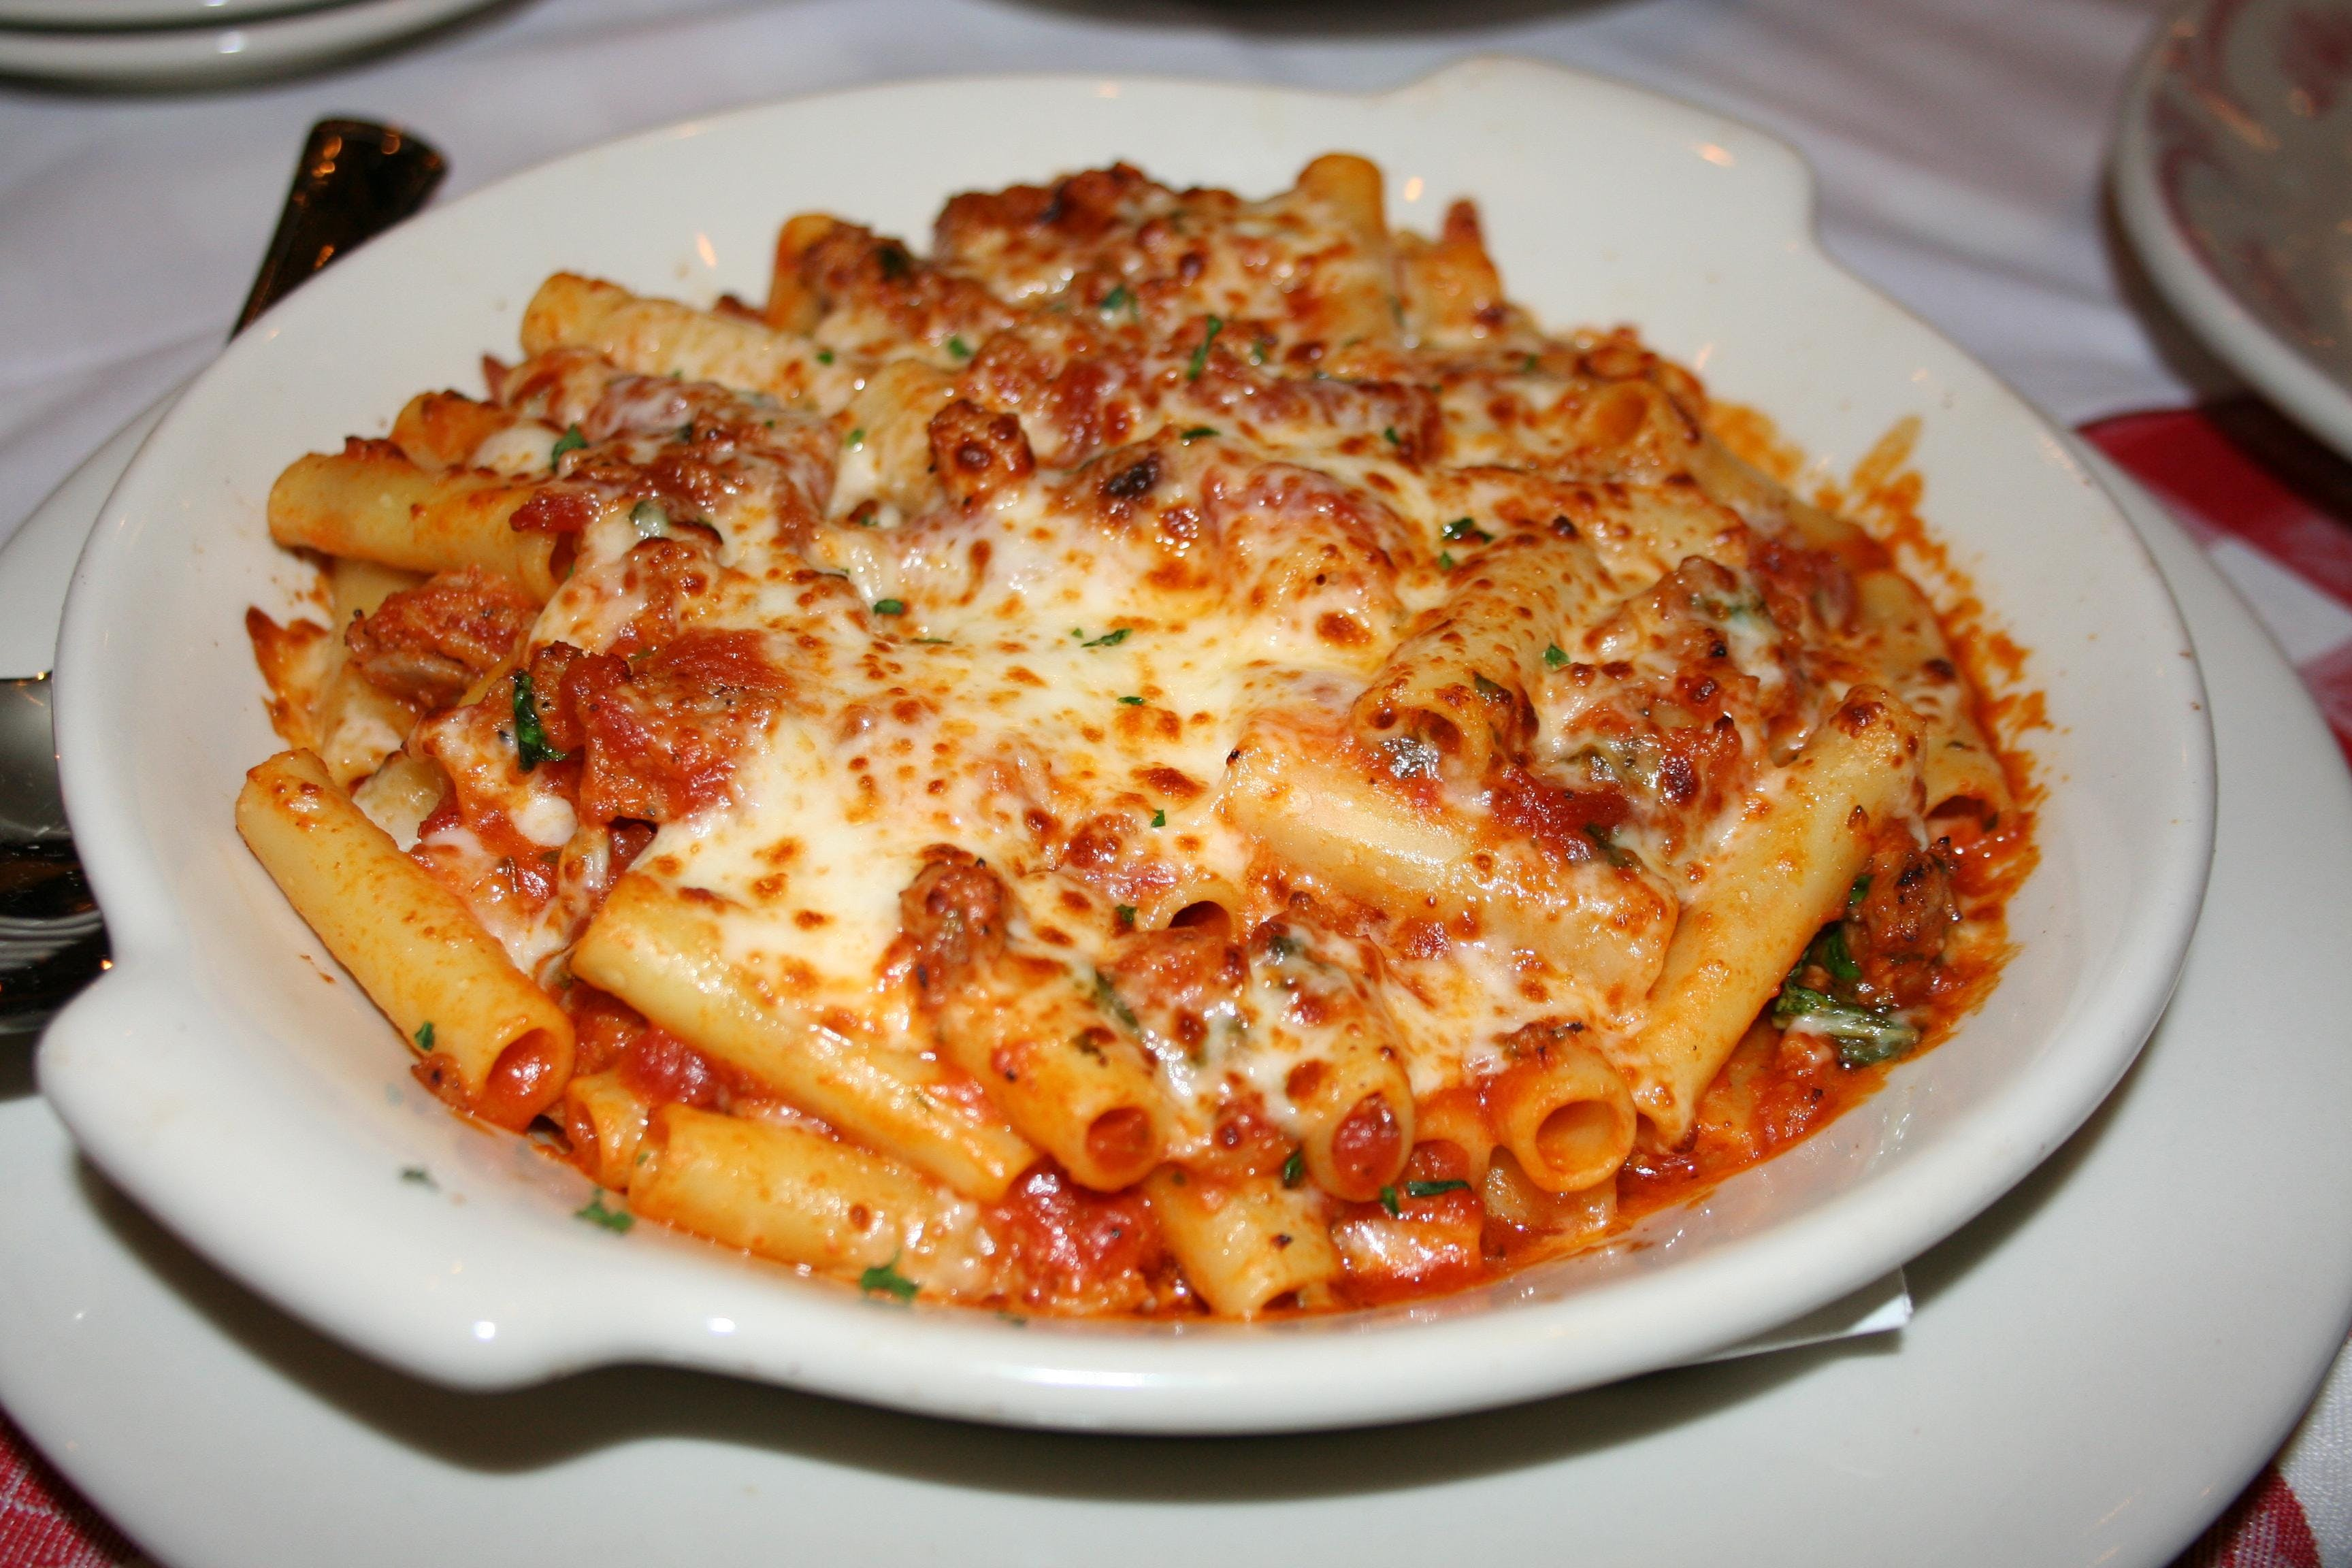 Photo of a sample lunch meal at Maggiano's